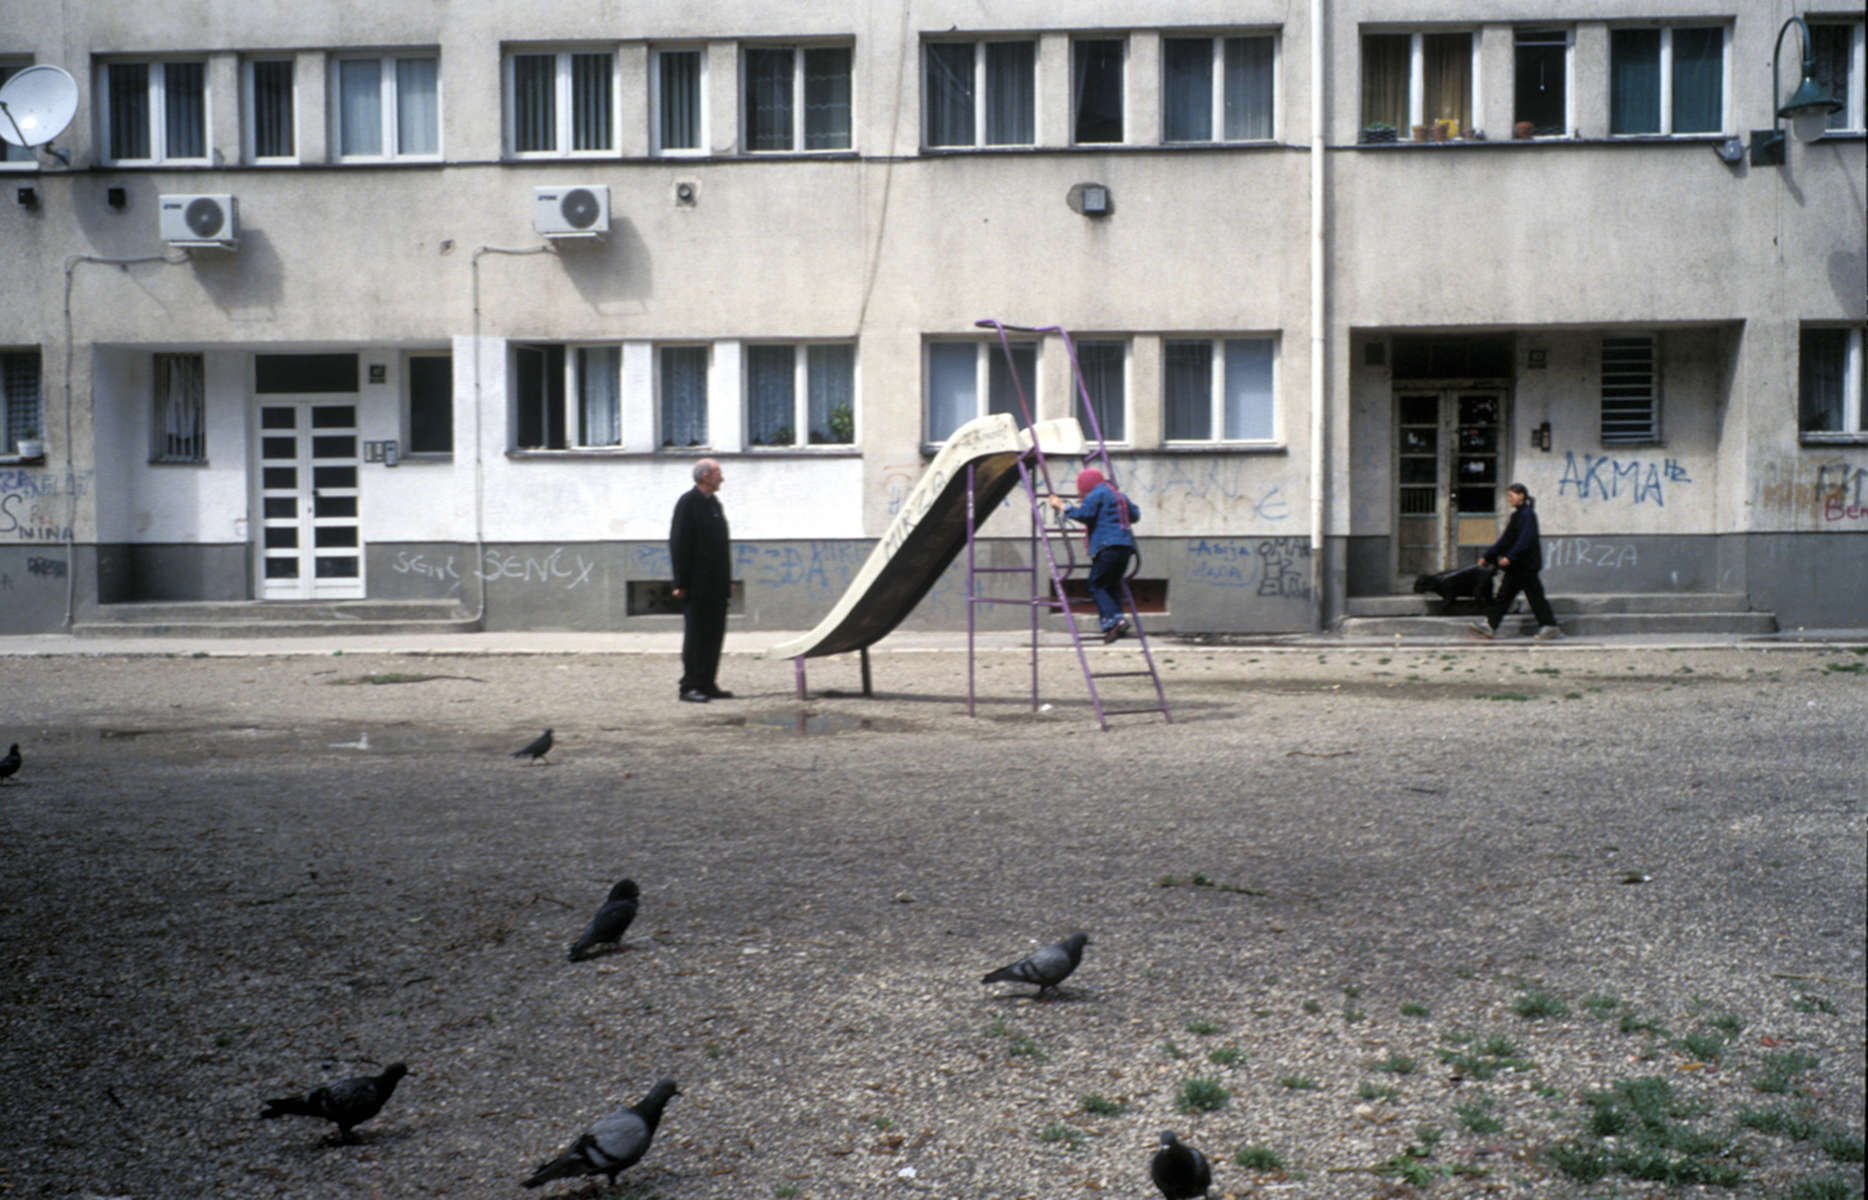 Playground in front of an apartment building. April 2002.